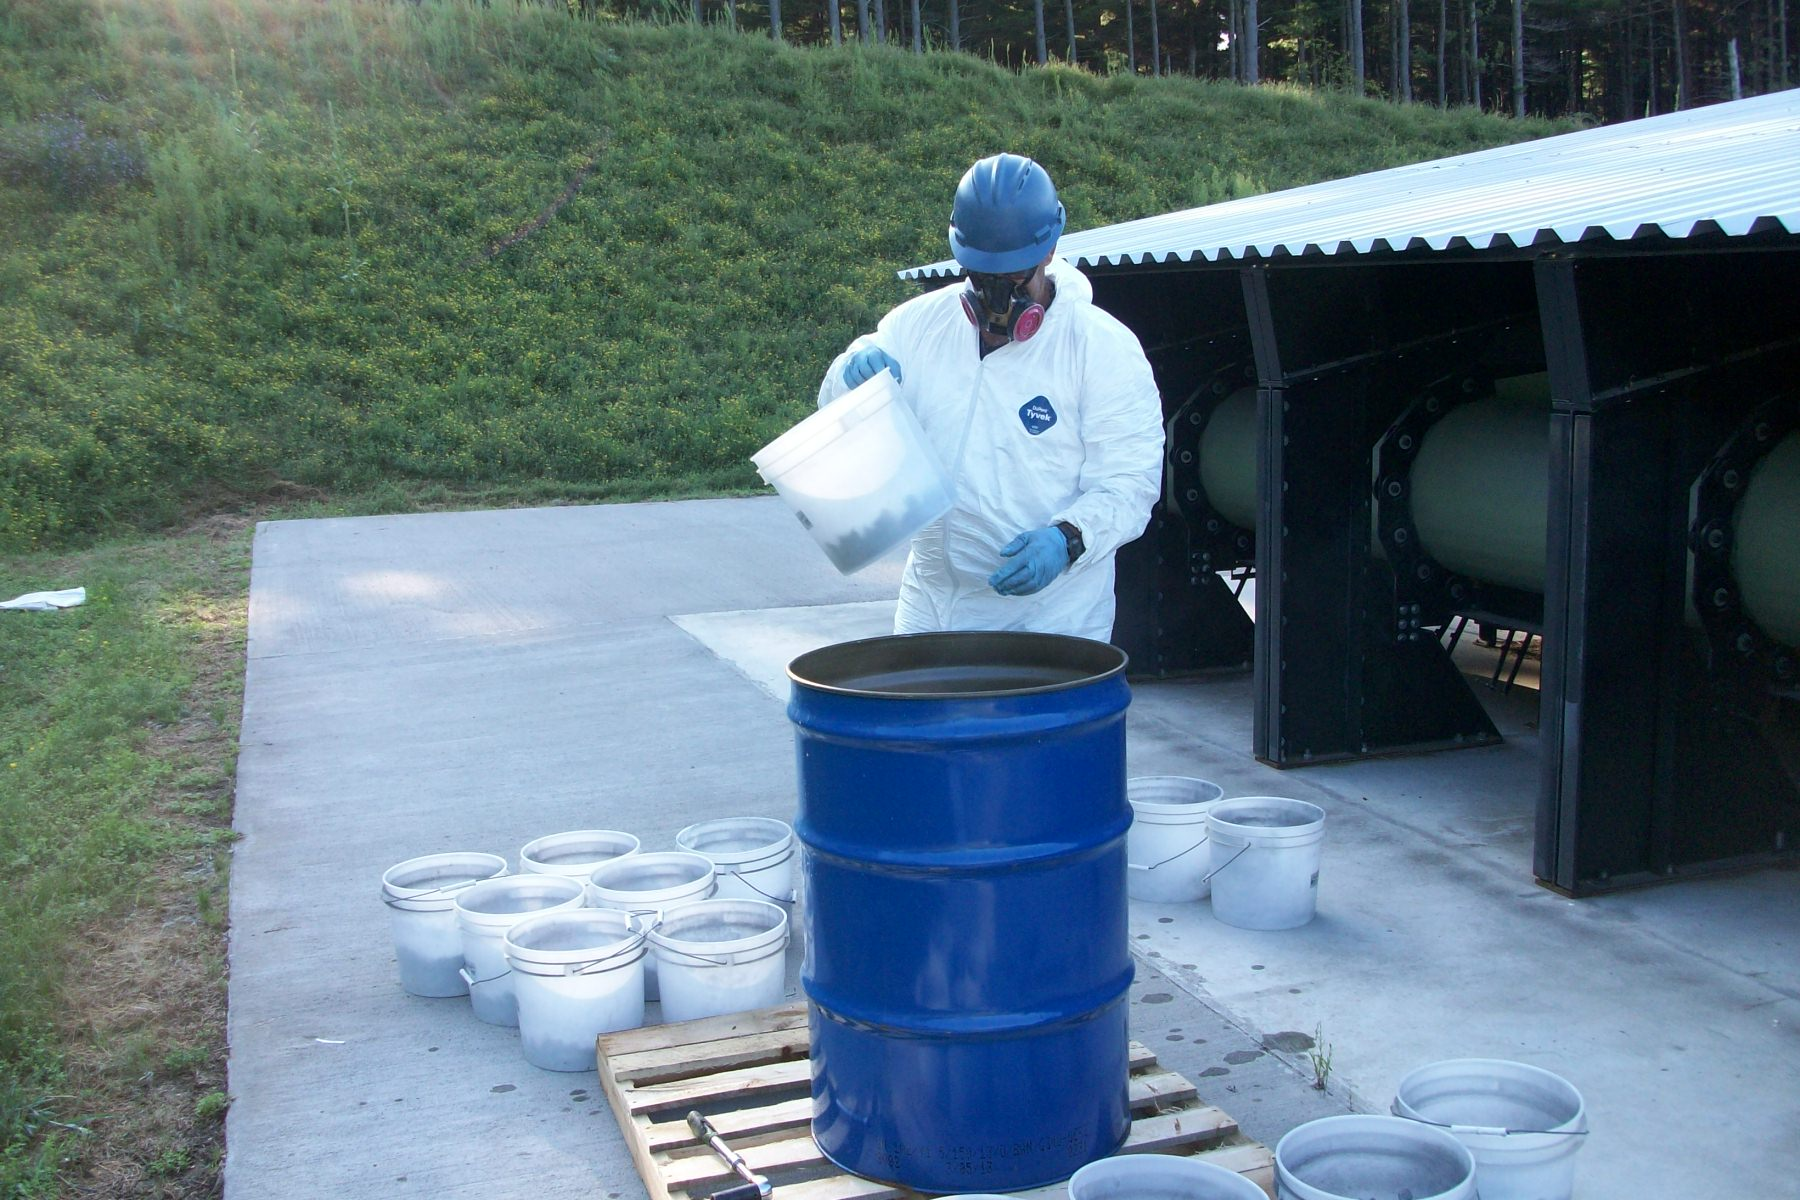 Public works director in North Carolina Indicted for Illegally Transporting Hazardous Waste From the City's Shooting Range